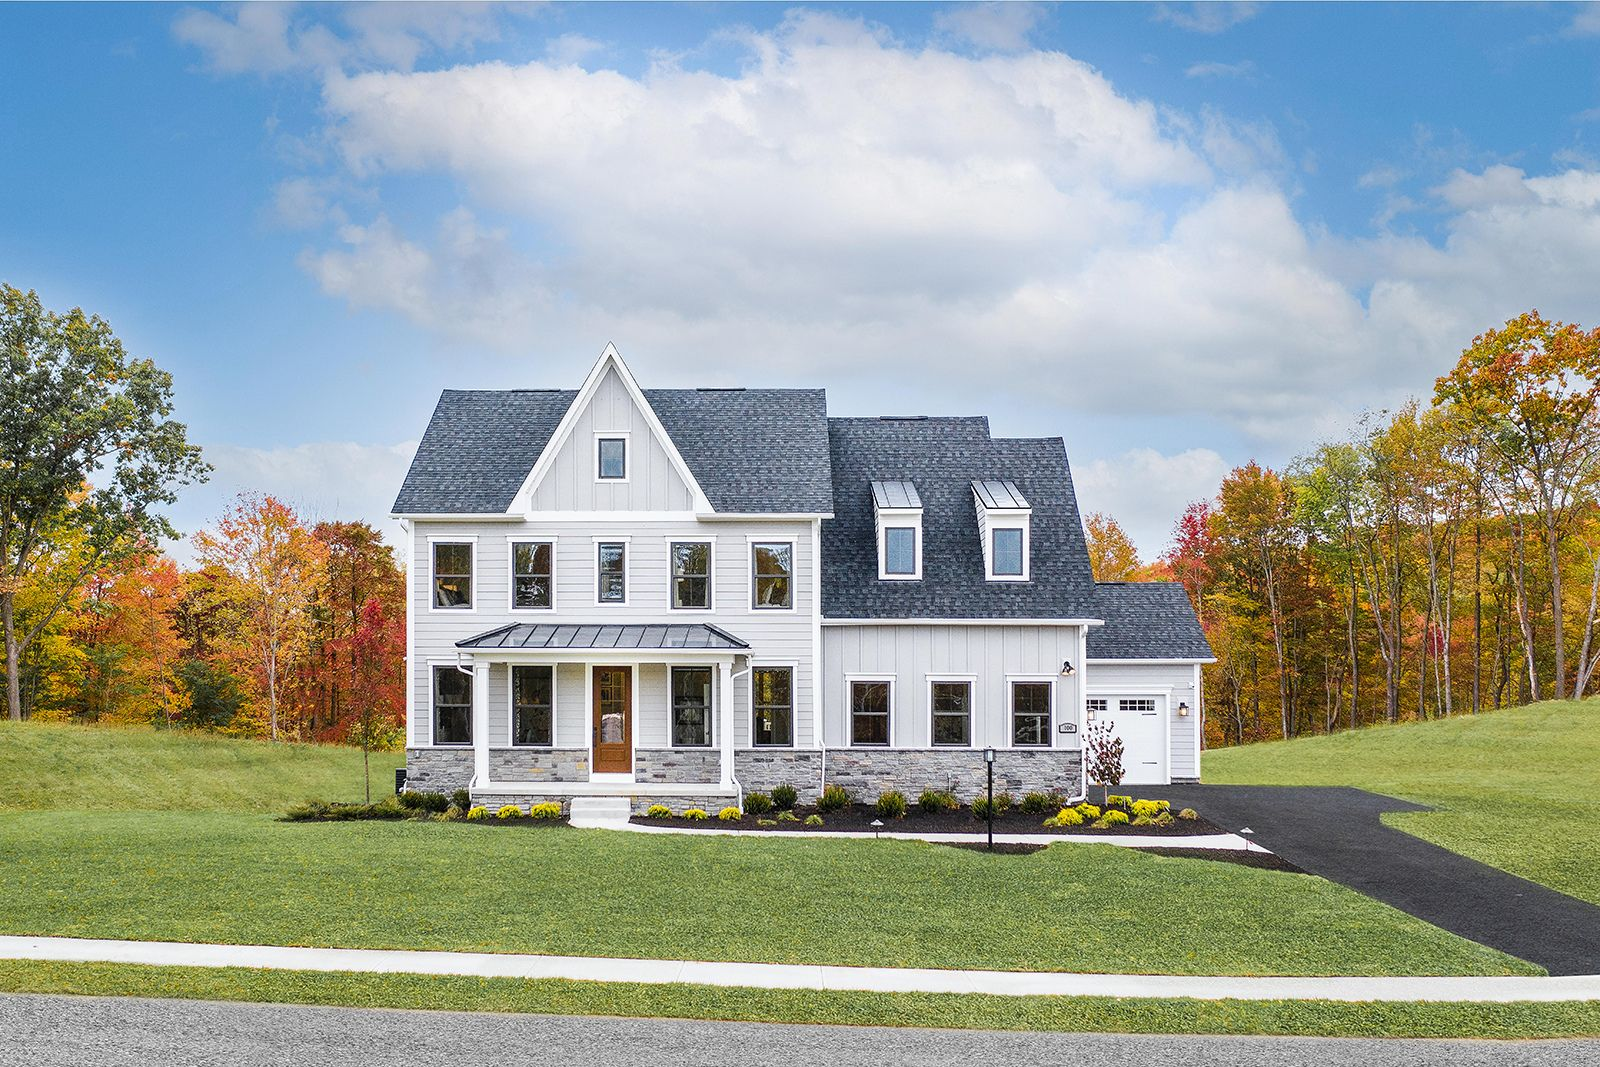 Welcome Home to Brookhaven:The only new homes in Mars with your dream backyard, stunning views and high end finishes all included. Plus up to a 4 car garage! Click here to schedule your visit at Brookhaven.